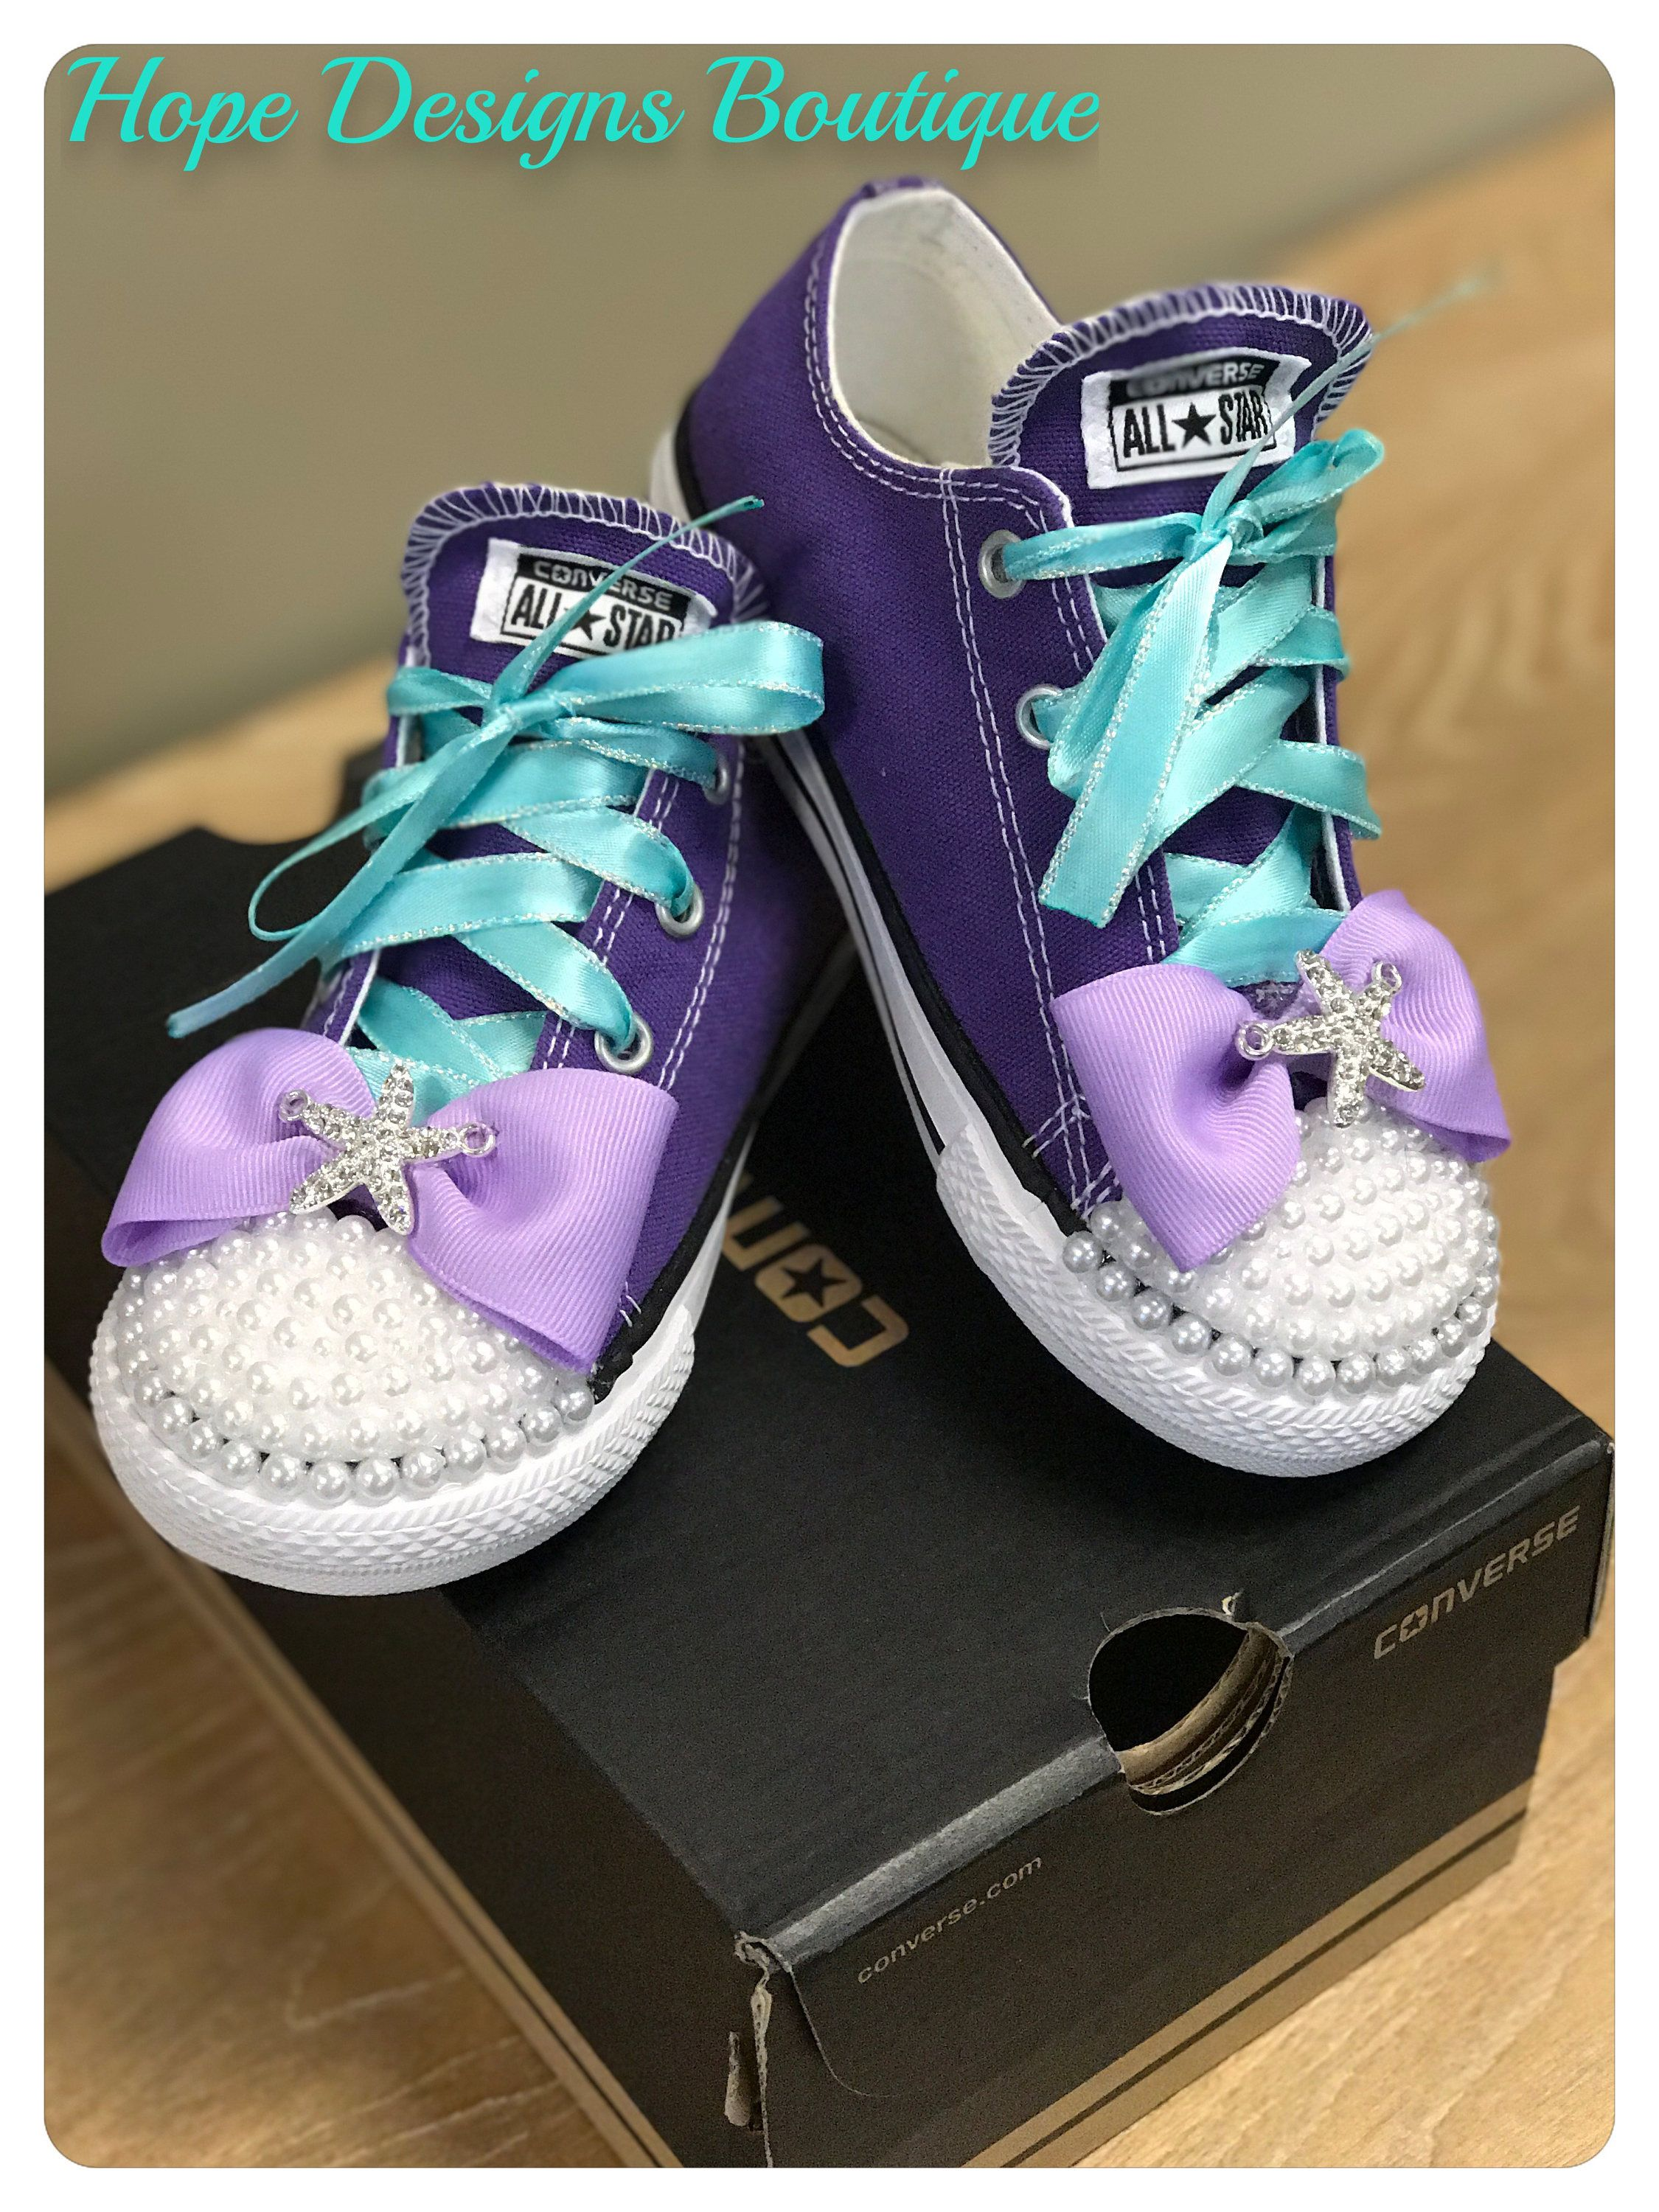 28dcd065e2d8 Little Mermaid Inspired Bling em Up-styled Converse Chuck Taylor  Allstars Electric Purple (shoes included) by HopeDesignsBoutique on Etsy